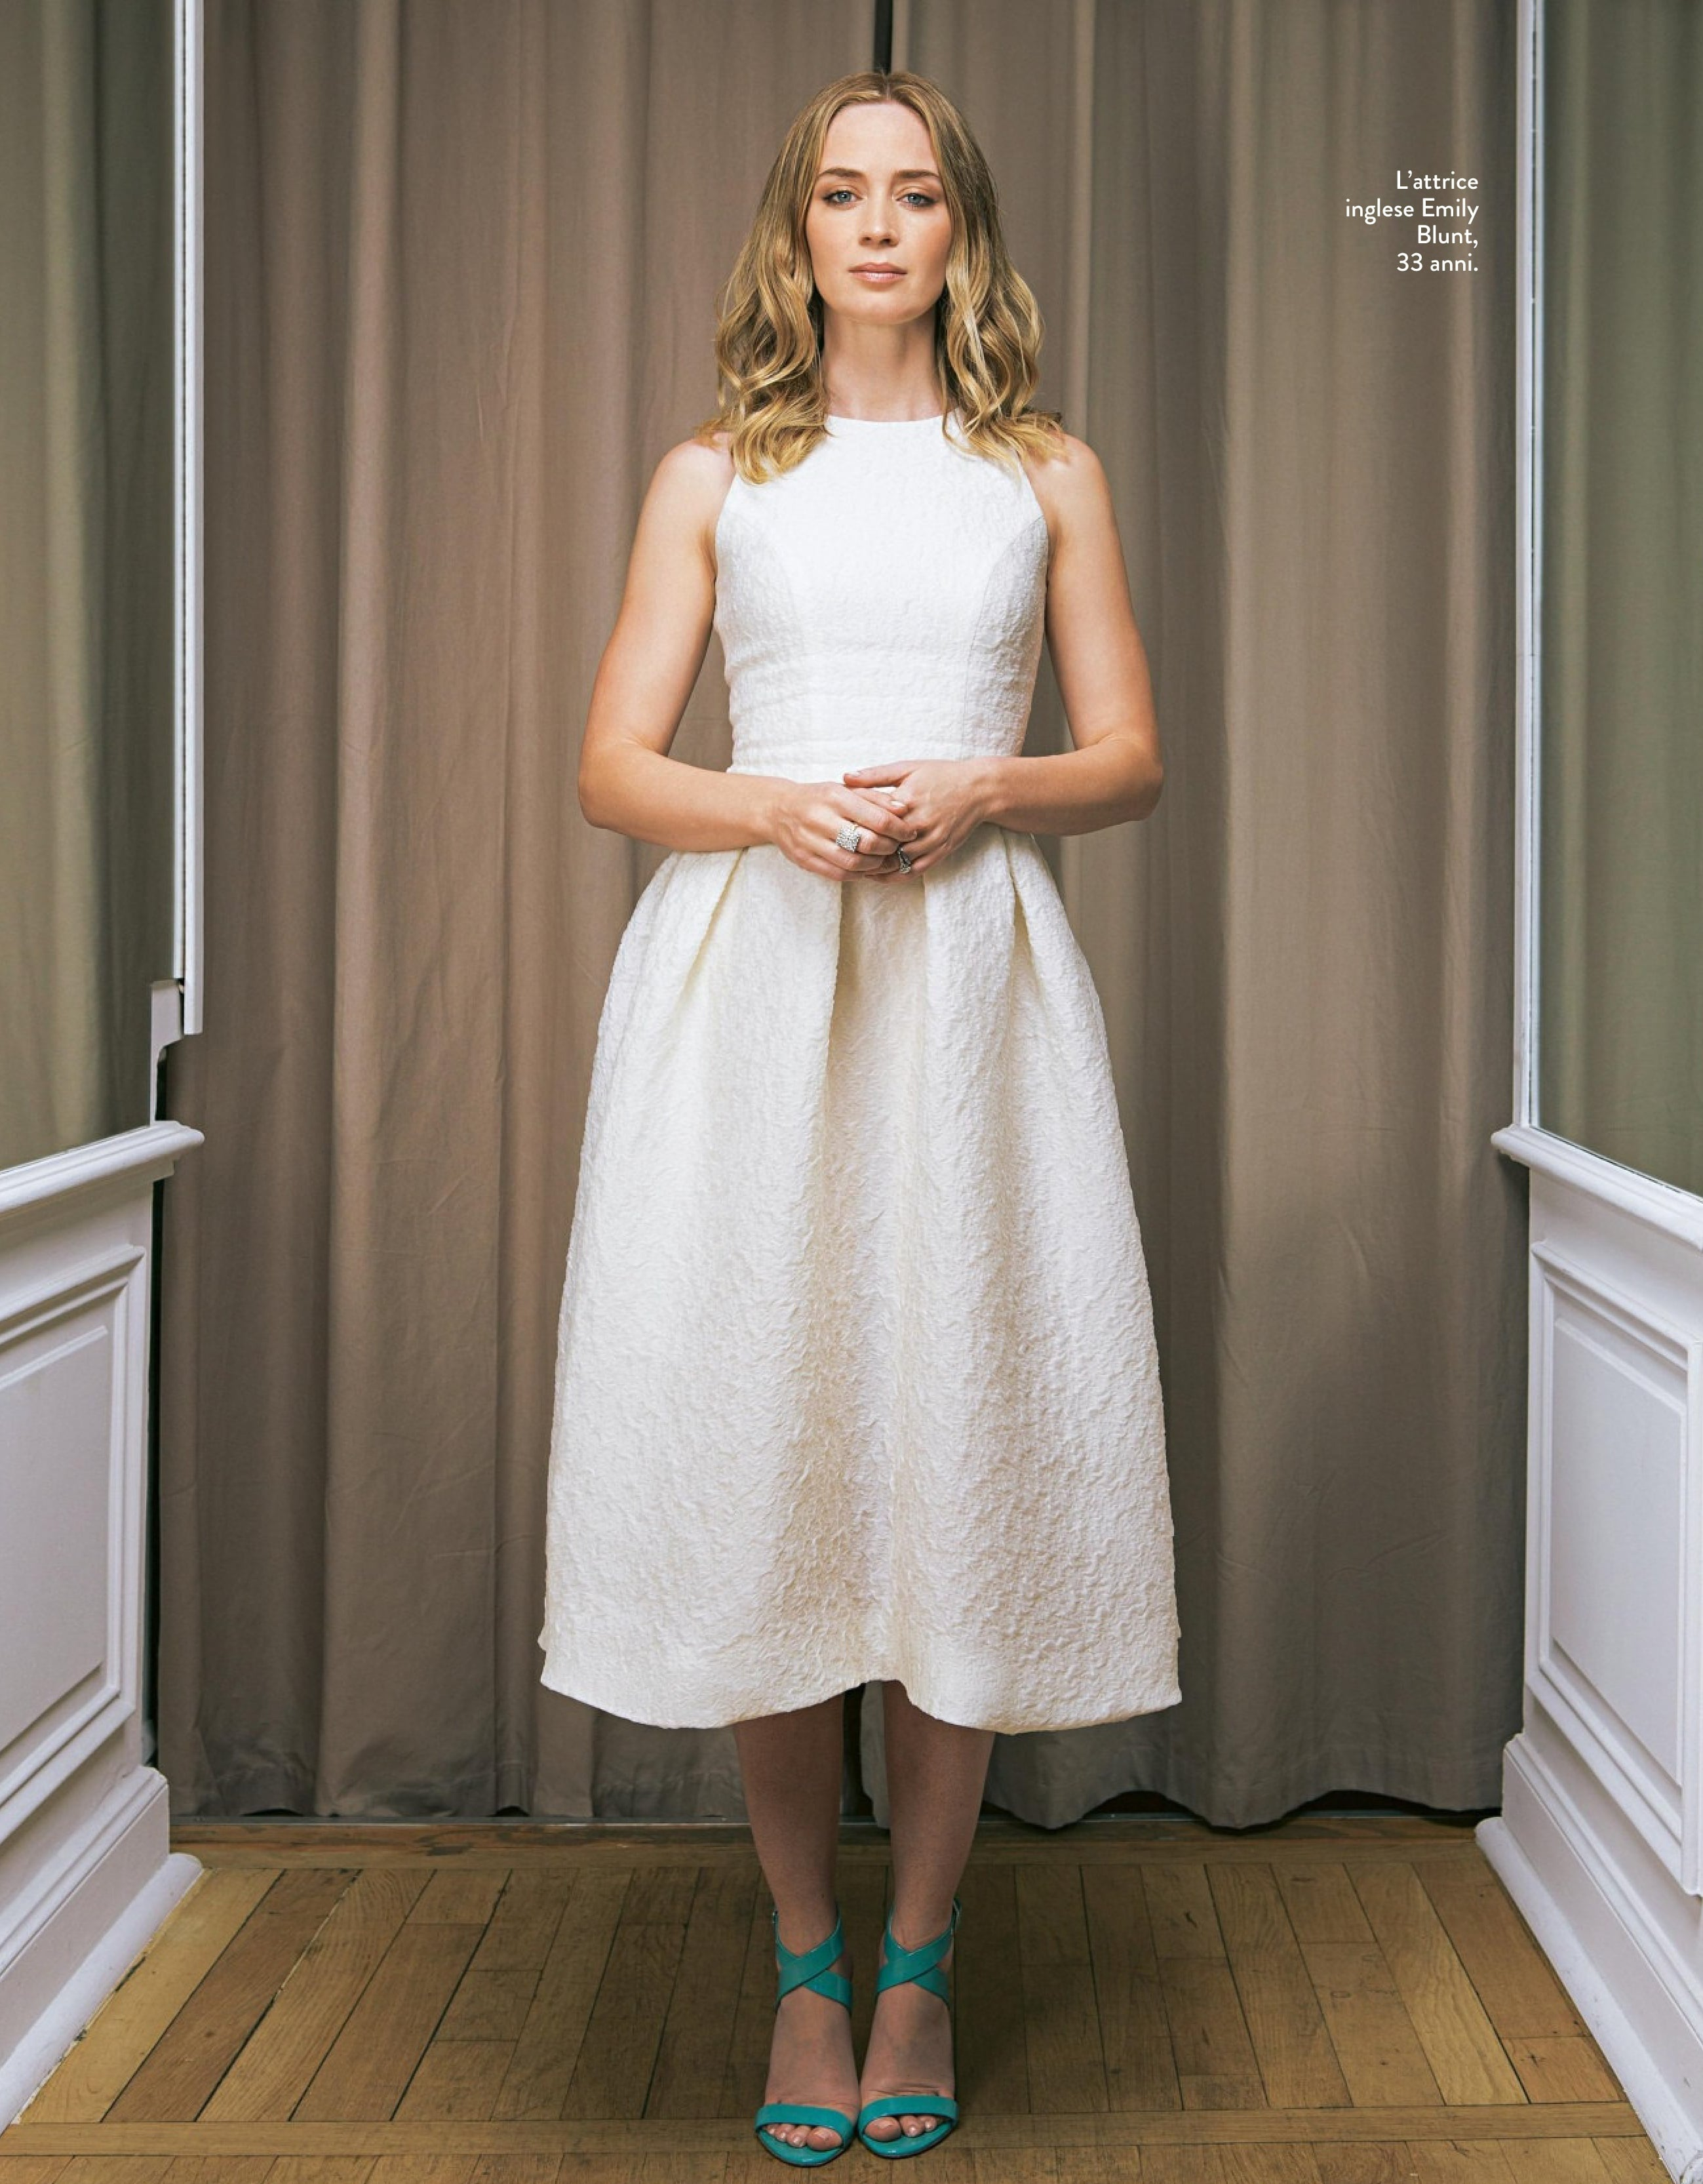 Emily Blunt feet pictures